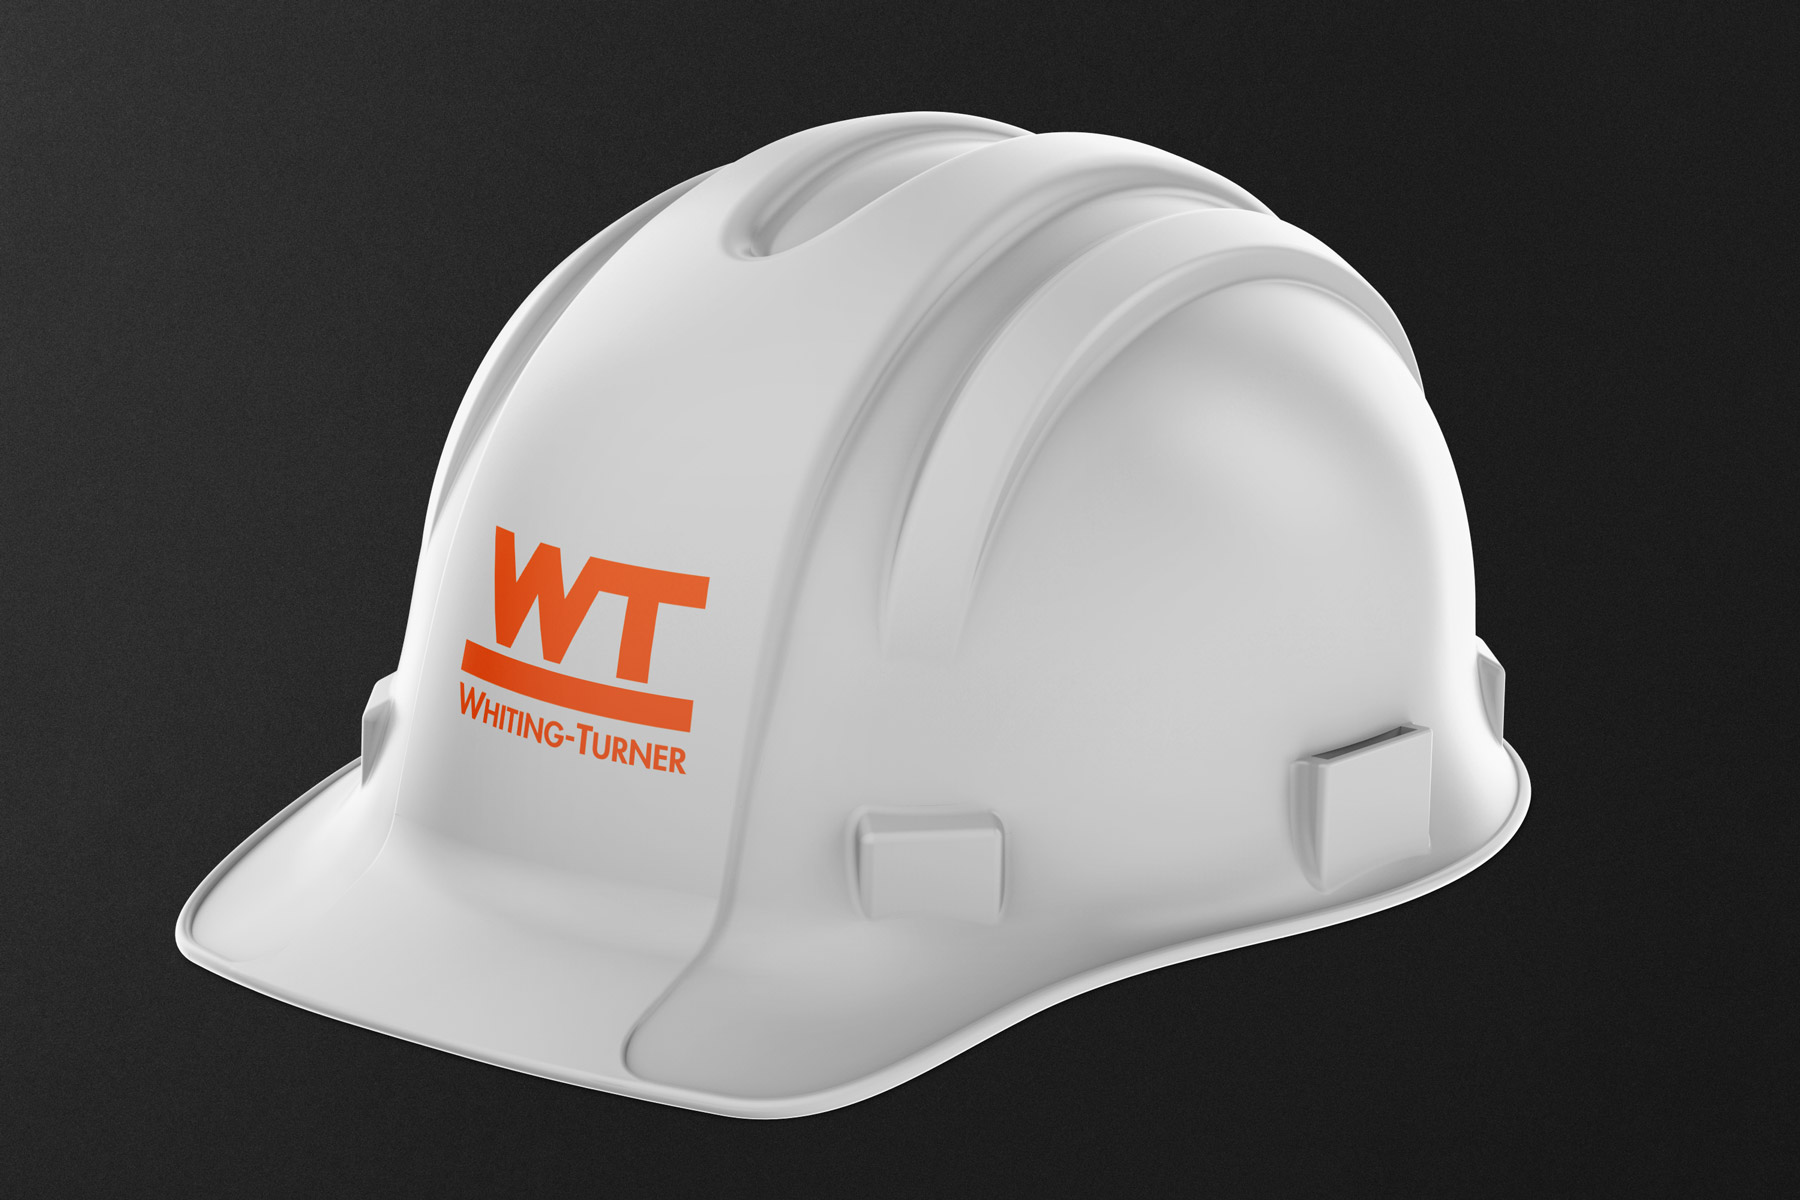 Whiting Turner - Construction Company Logo on a Hard Hat